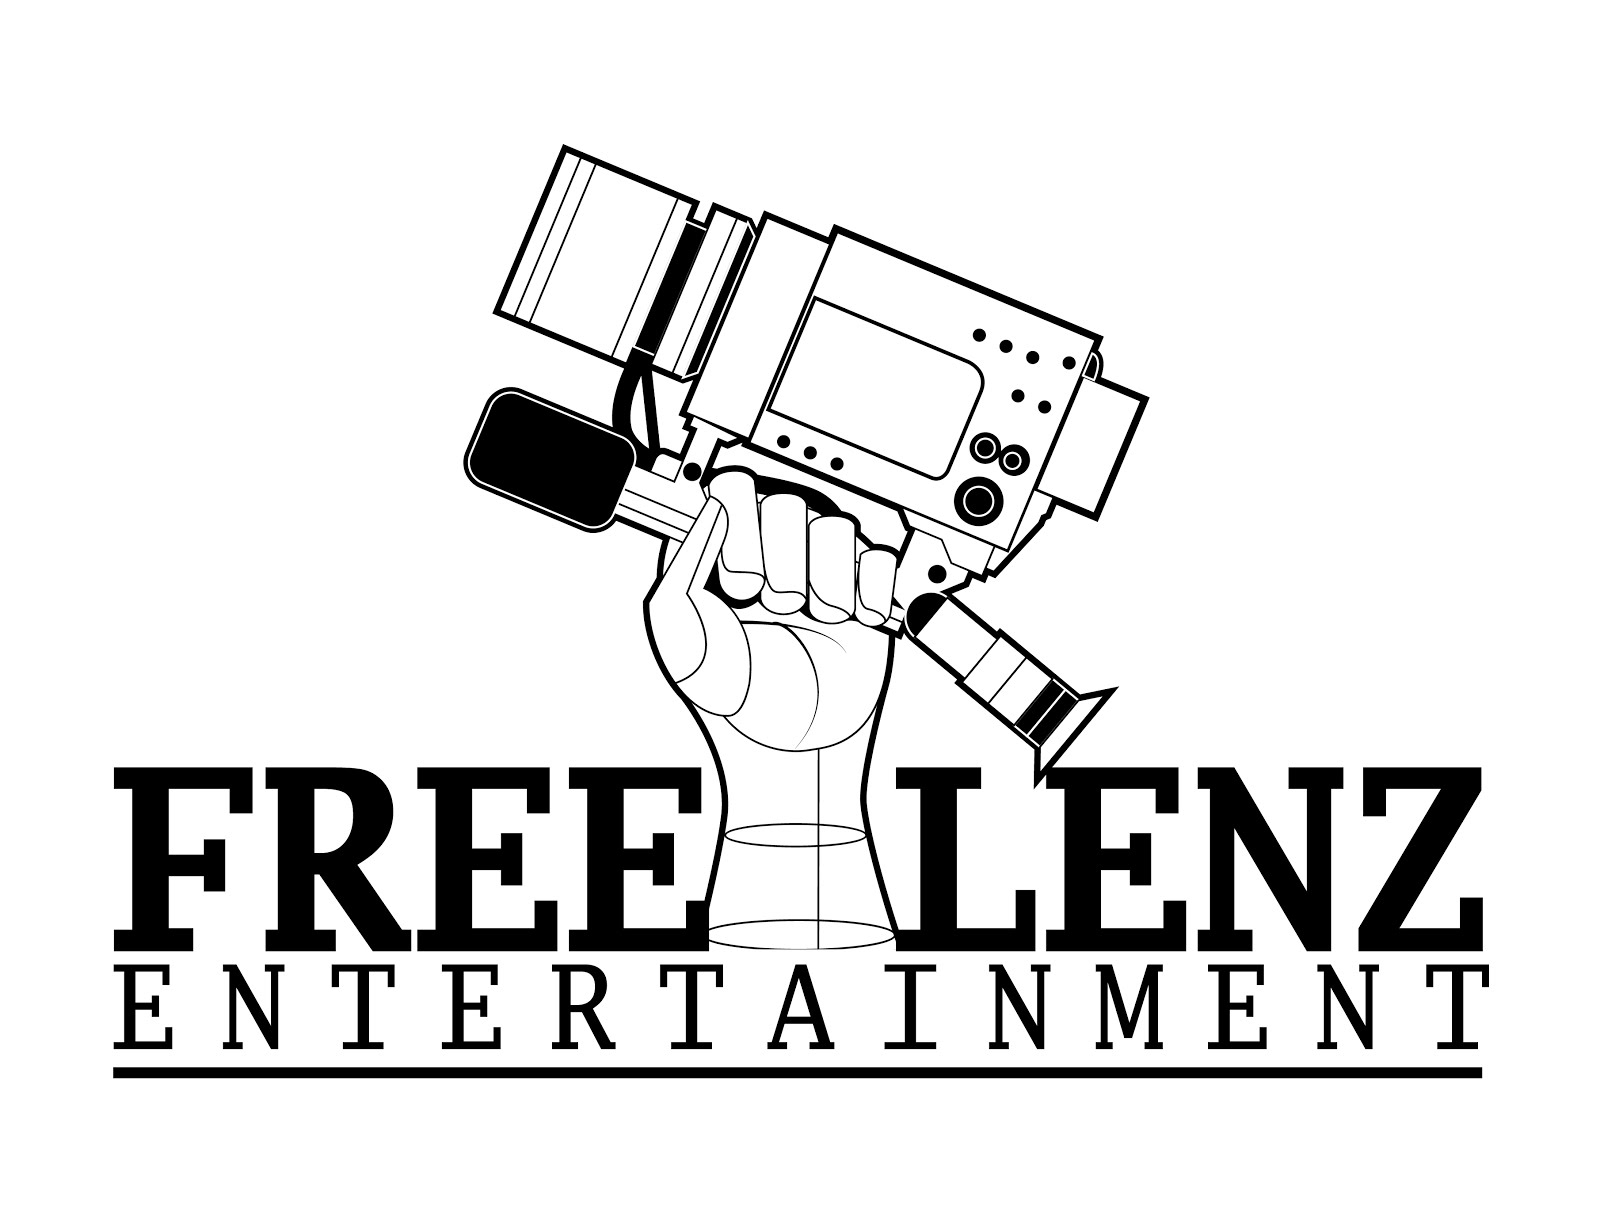 Freelenz entertainment logo